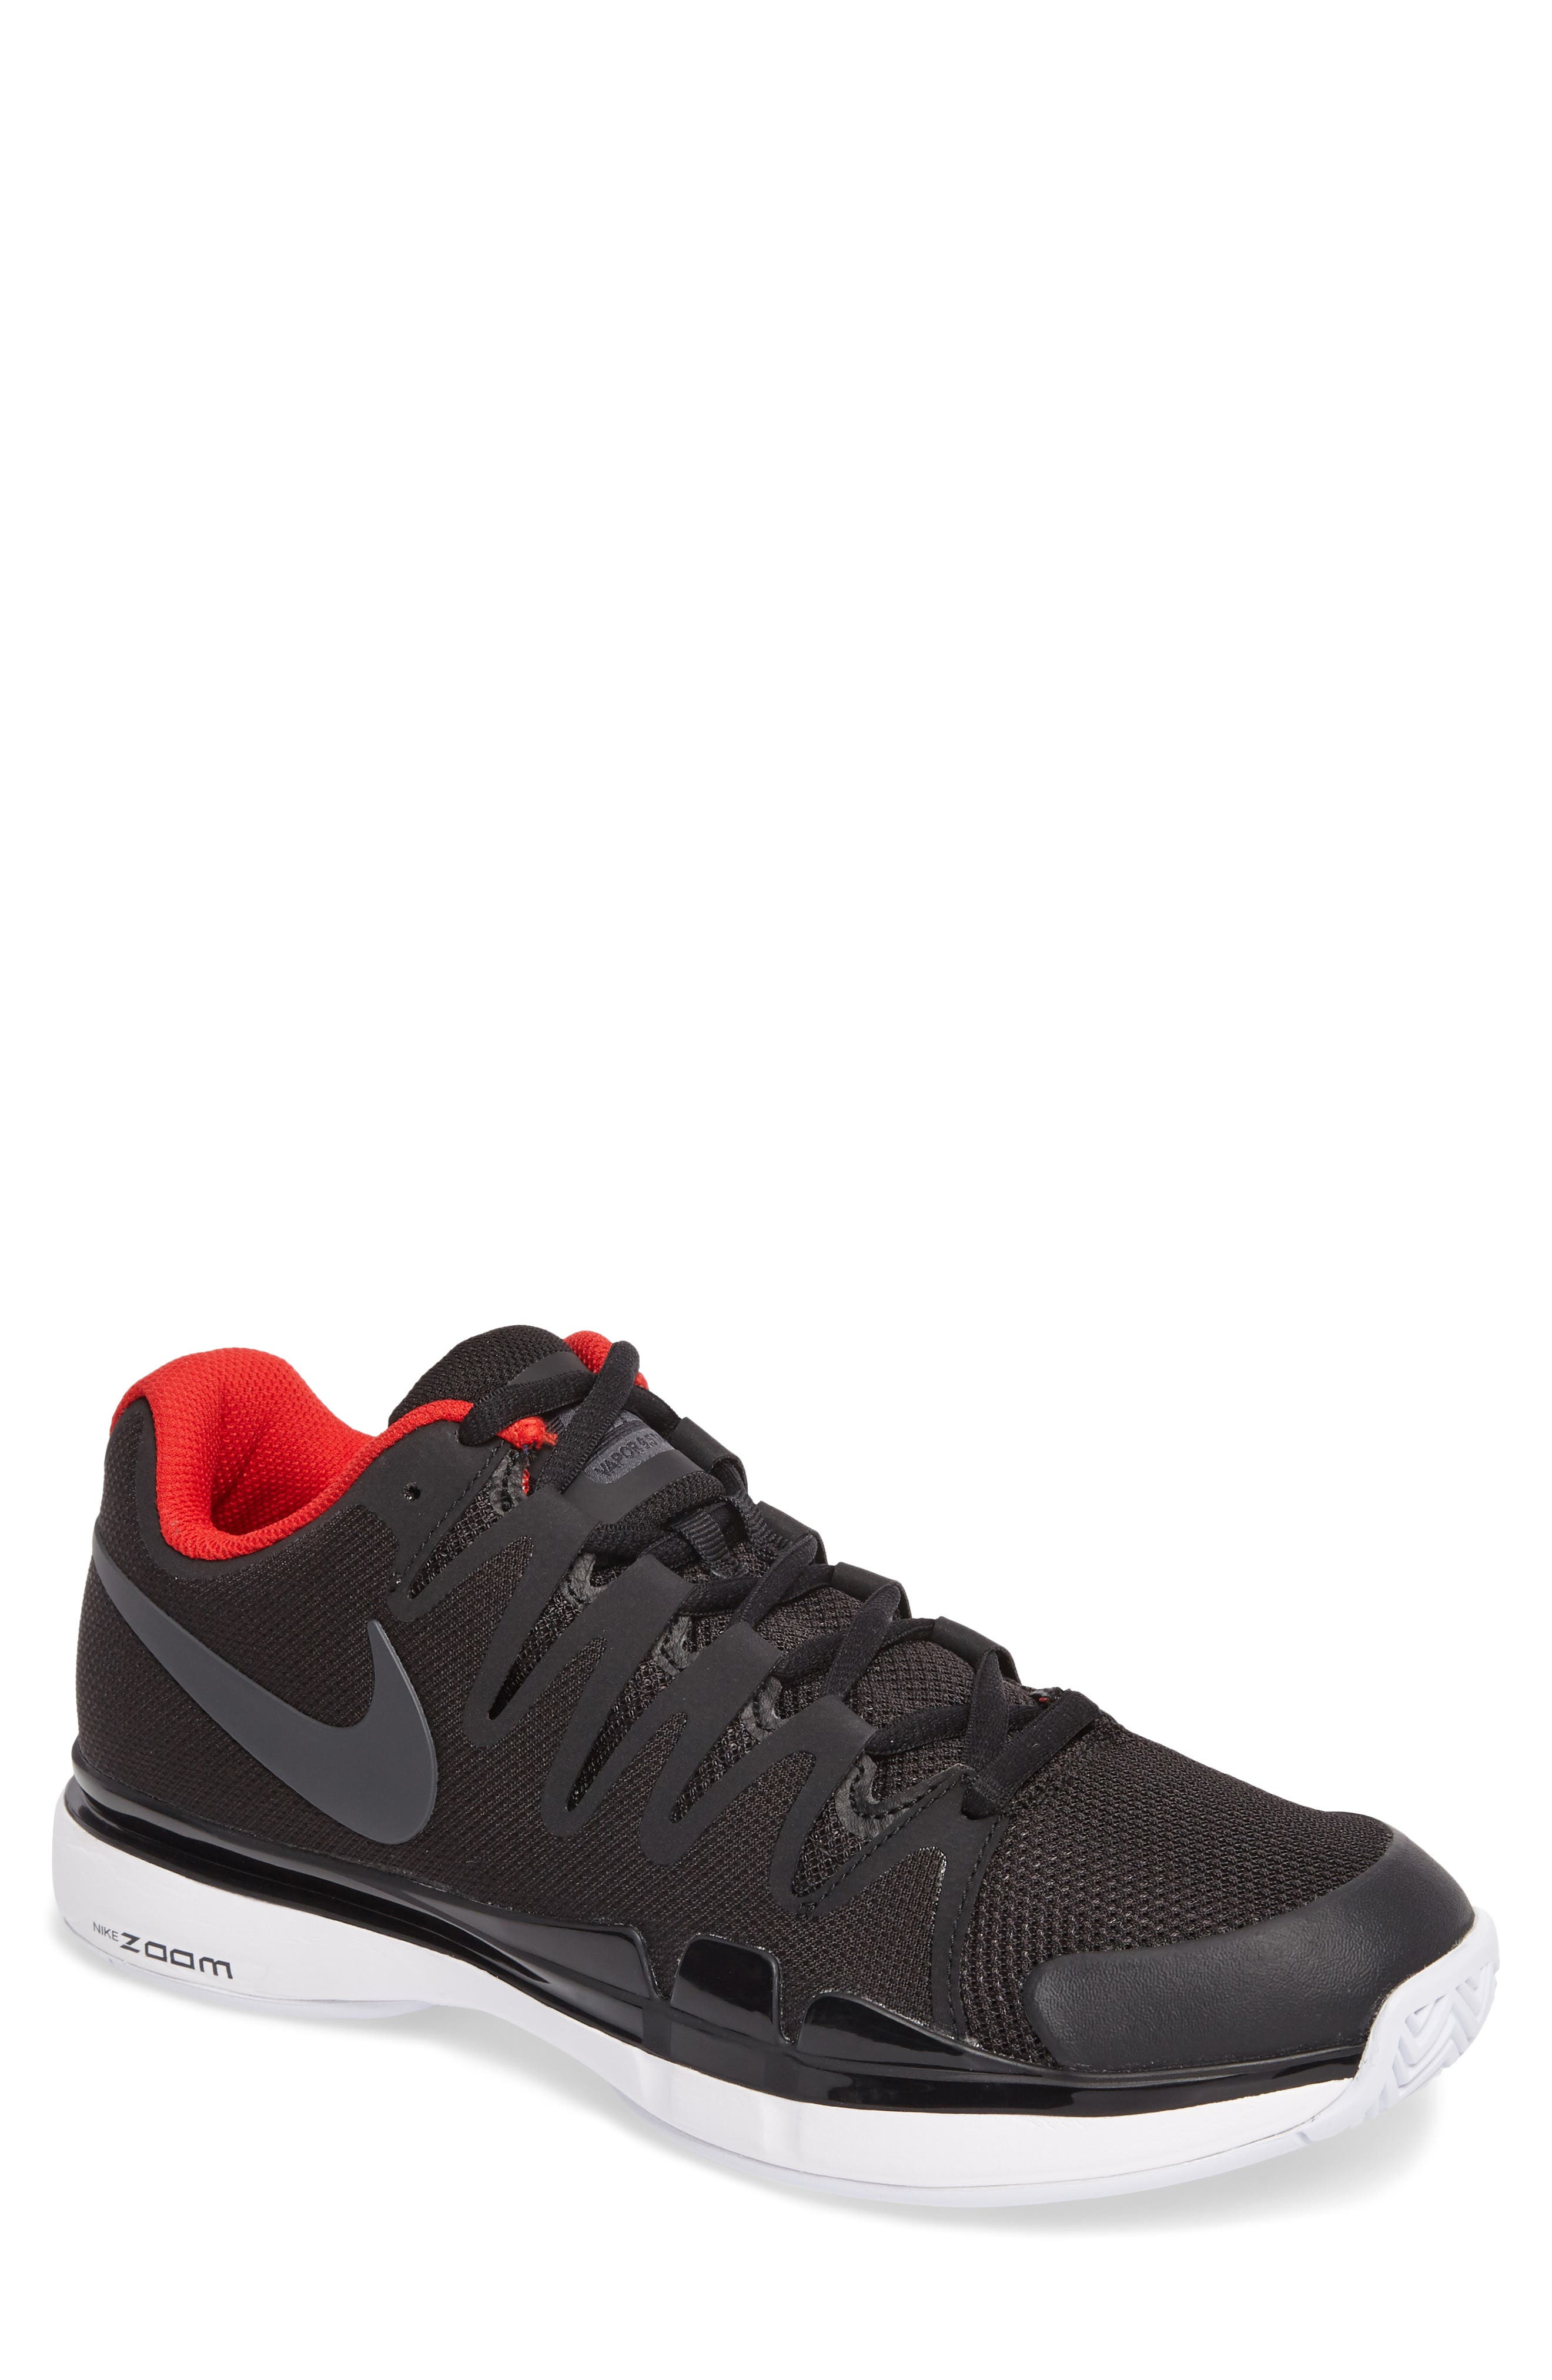 Nike 'Zoom Vapor 9.5 Tour' Tennis Shoe (Men)